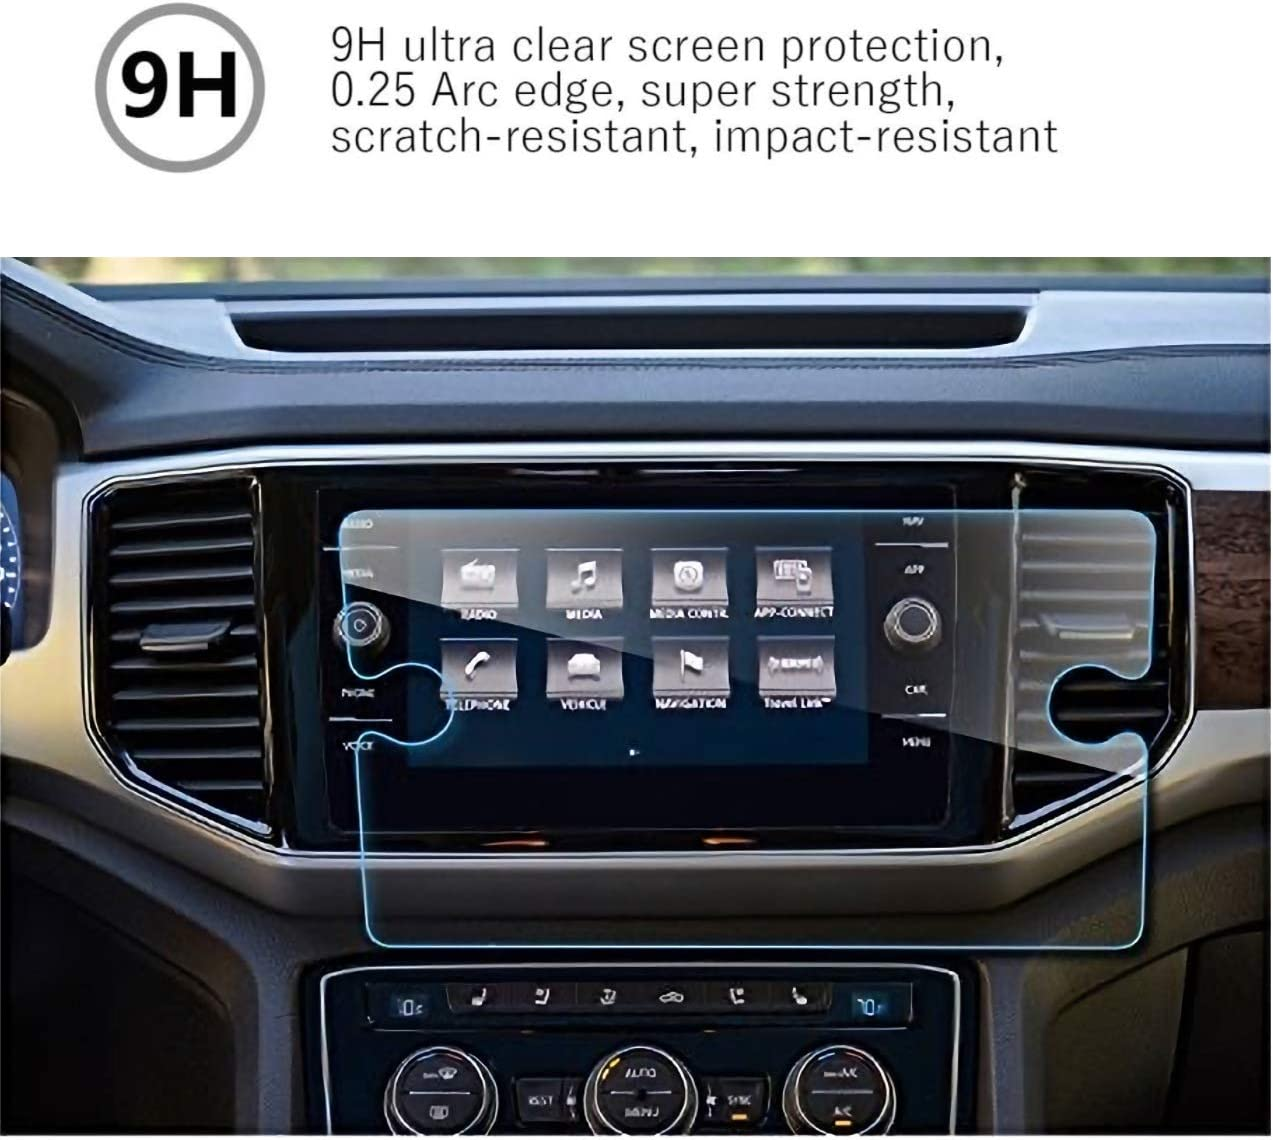 MBSIX Tempered Glass Screen Protector Compatiple with 2018-2020 Volkswagen Atlas 8 Inch Touch Screen,HD Clear,Scratch-Resistant,Anti Glare,Protecting Volkswagen 8 Inch Screen